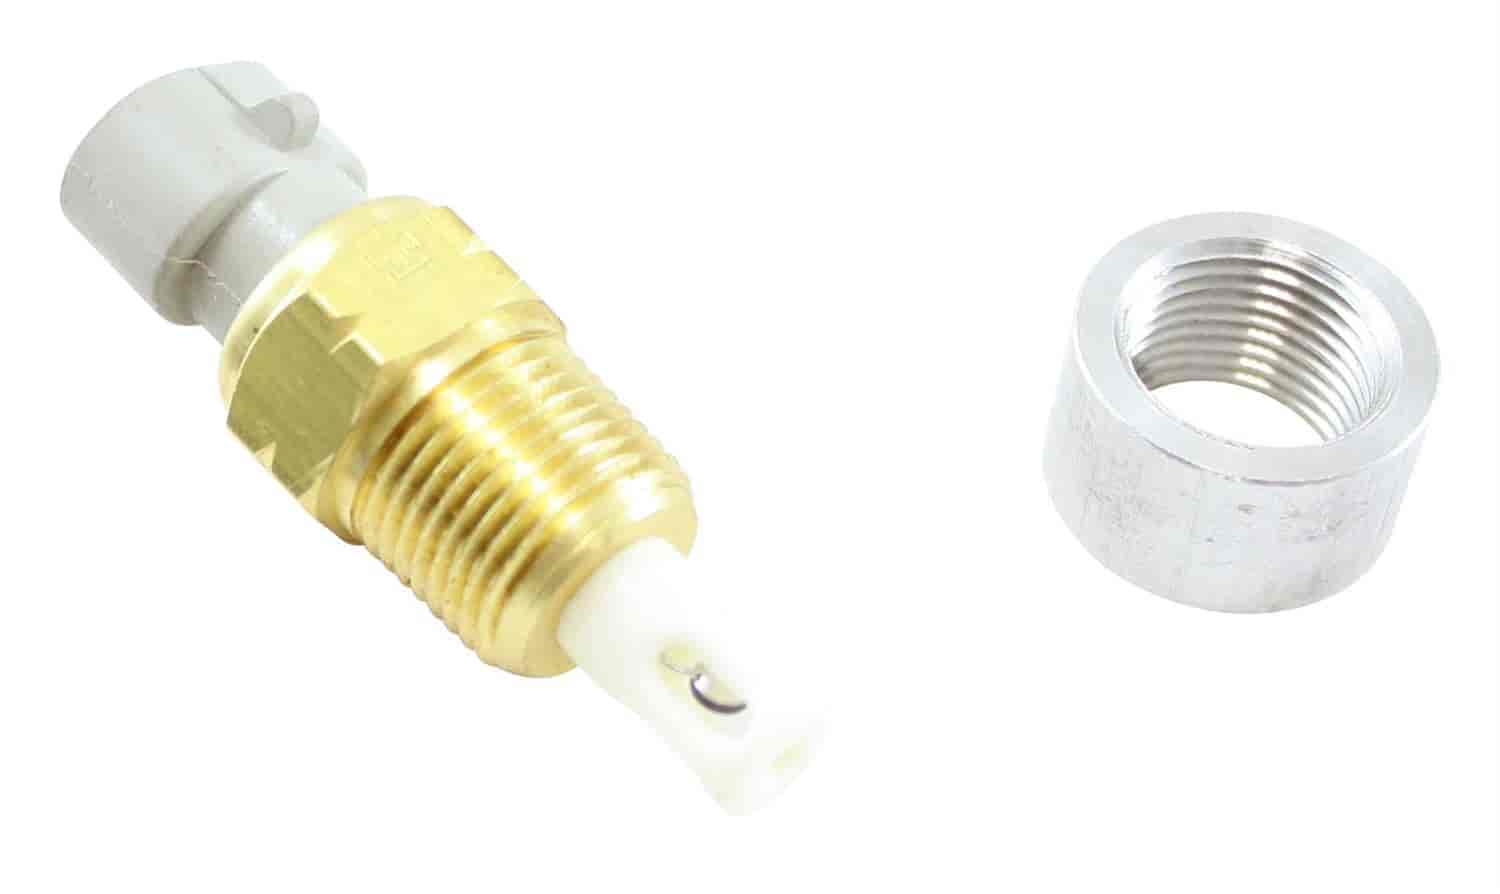 AEM 30-2010 - AEM Sensors, Connectors & Accessories